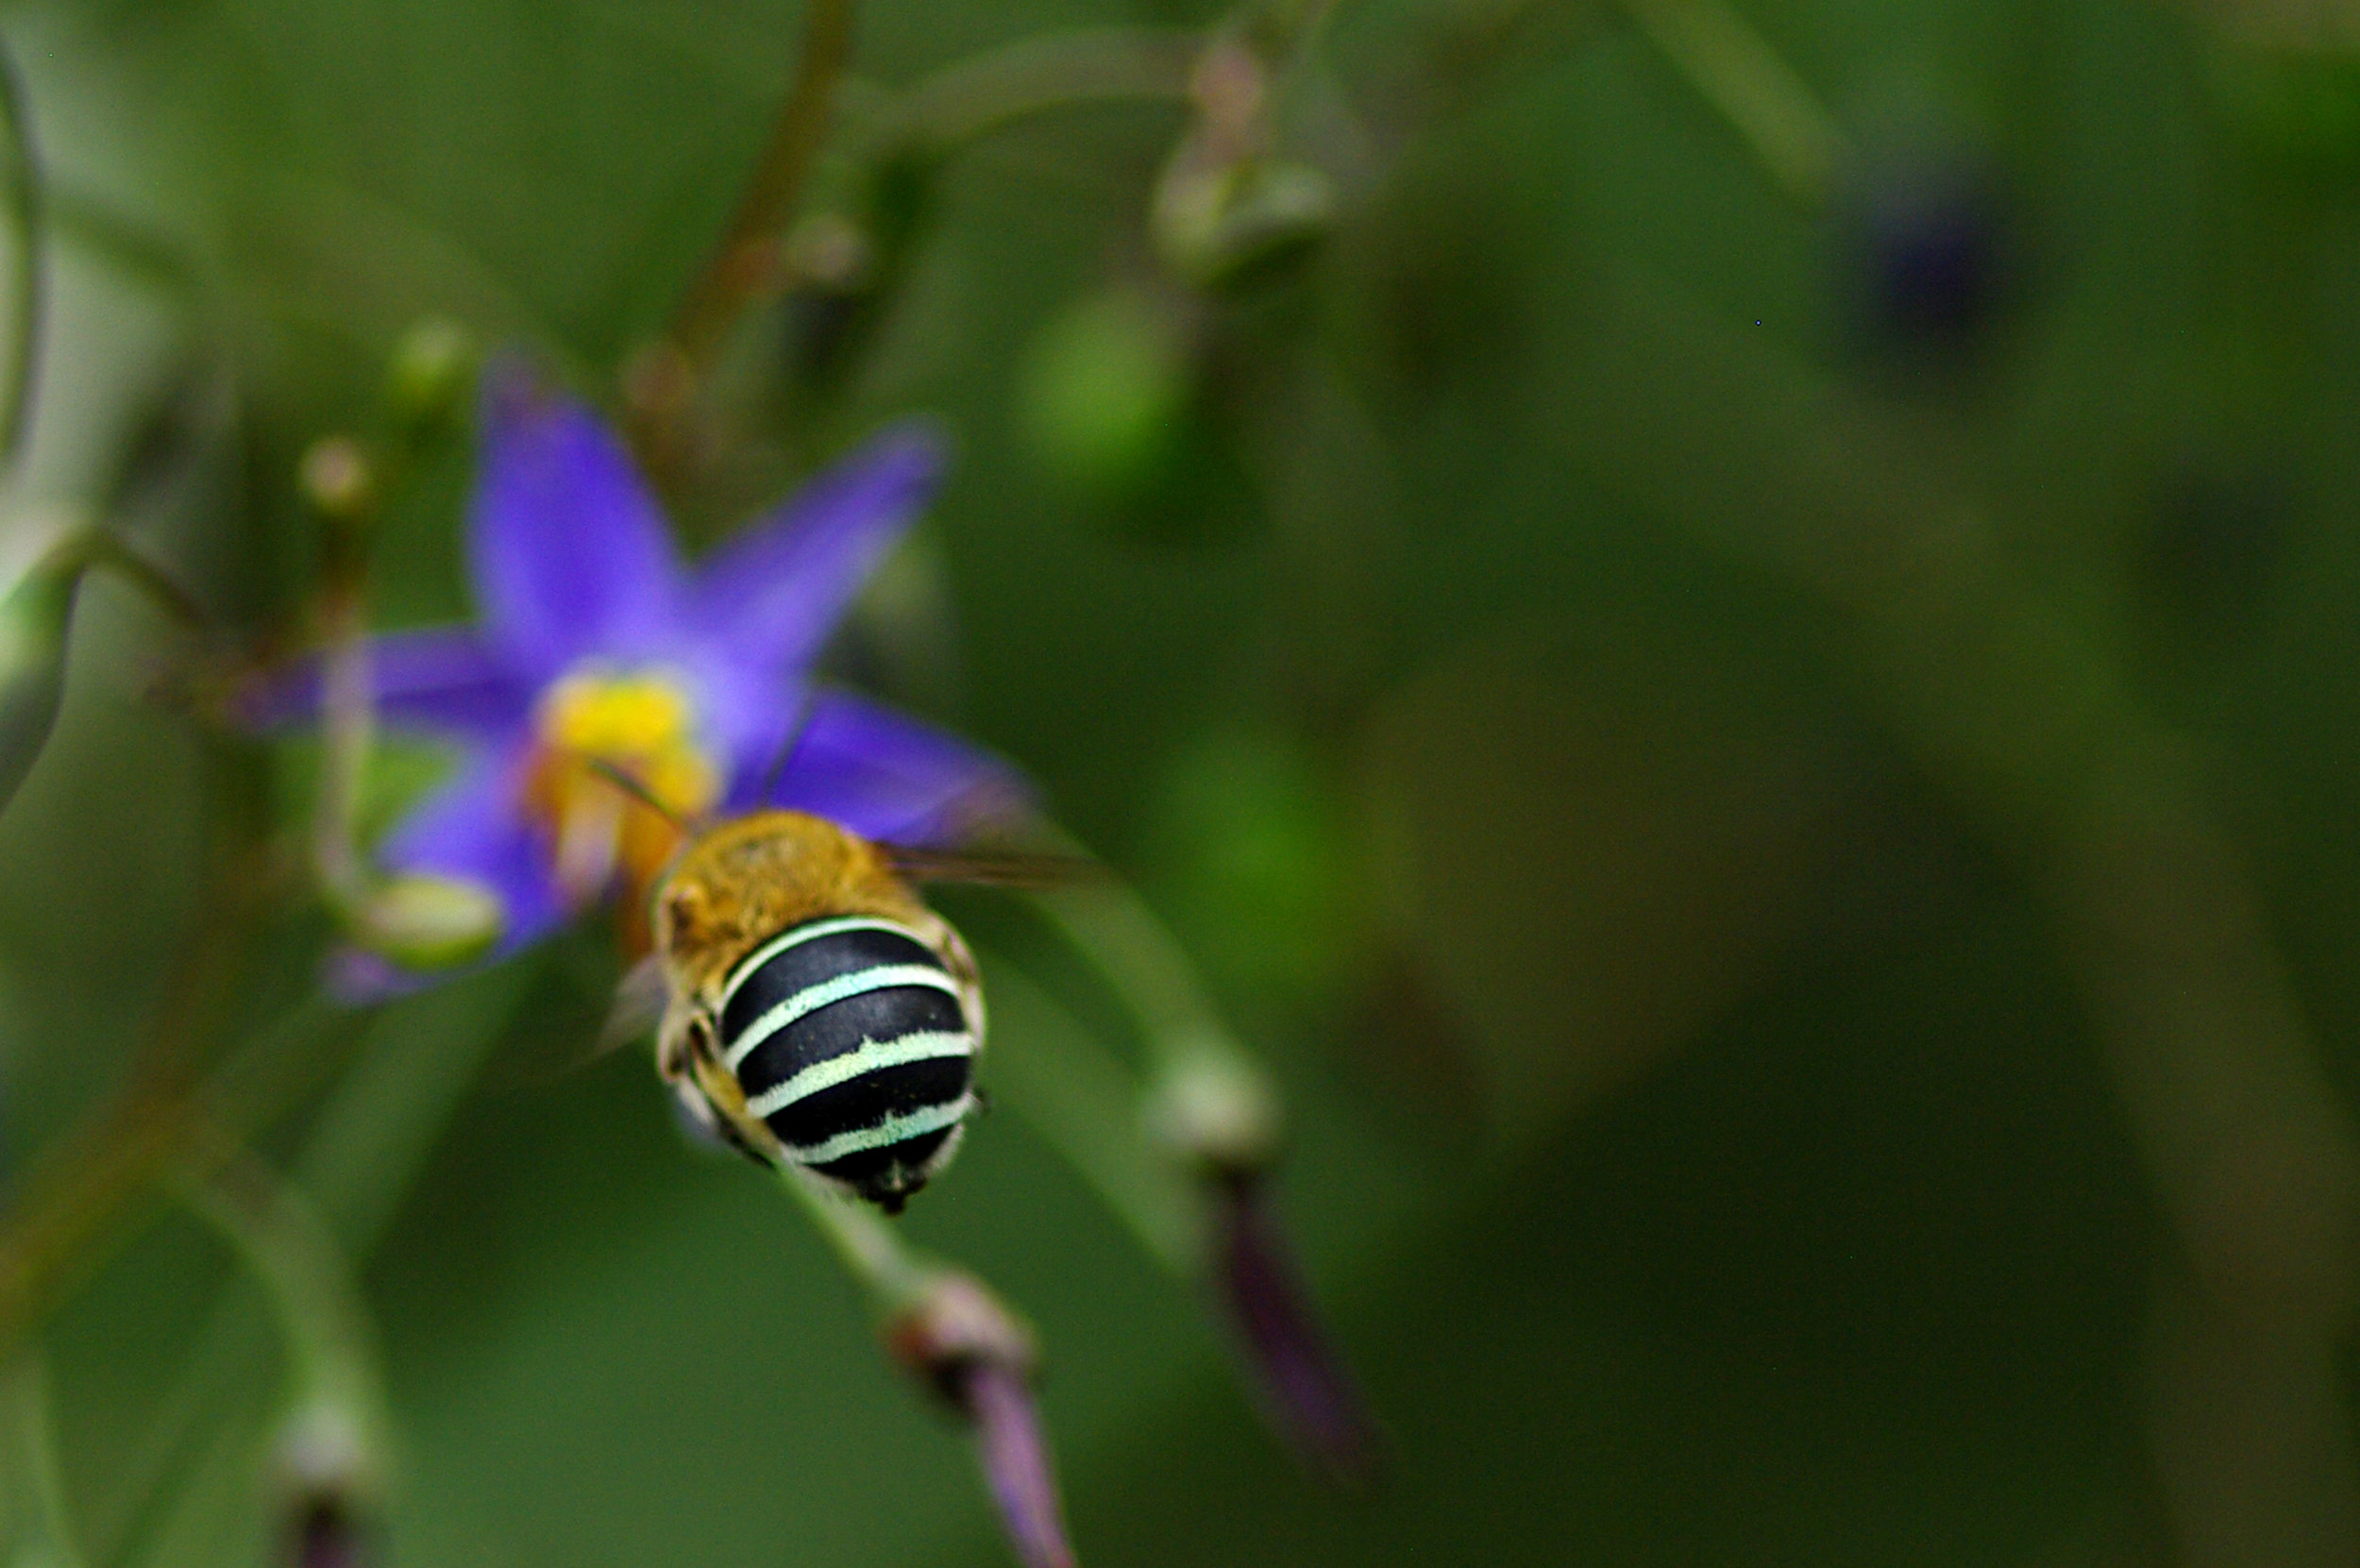 Luis admits that his favourite insect featured in the book is the Blue-banded Bee, this photo marking the moment when he first saw the species in the wild. The book explains how this beautiful insect uses a head-banging technique called 'buzz pollination' to collect pollen, and that the Boon wurrung word for bees is 'murnalong'. Image: Luis Mata